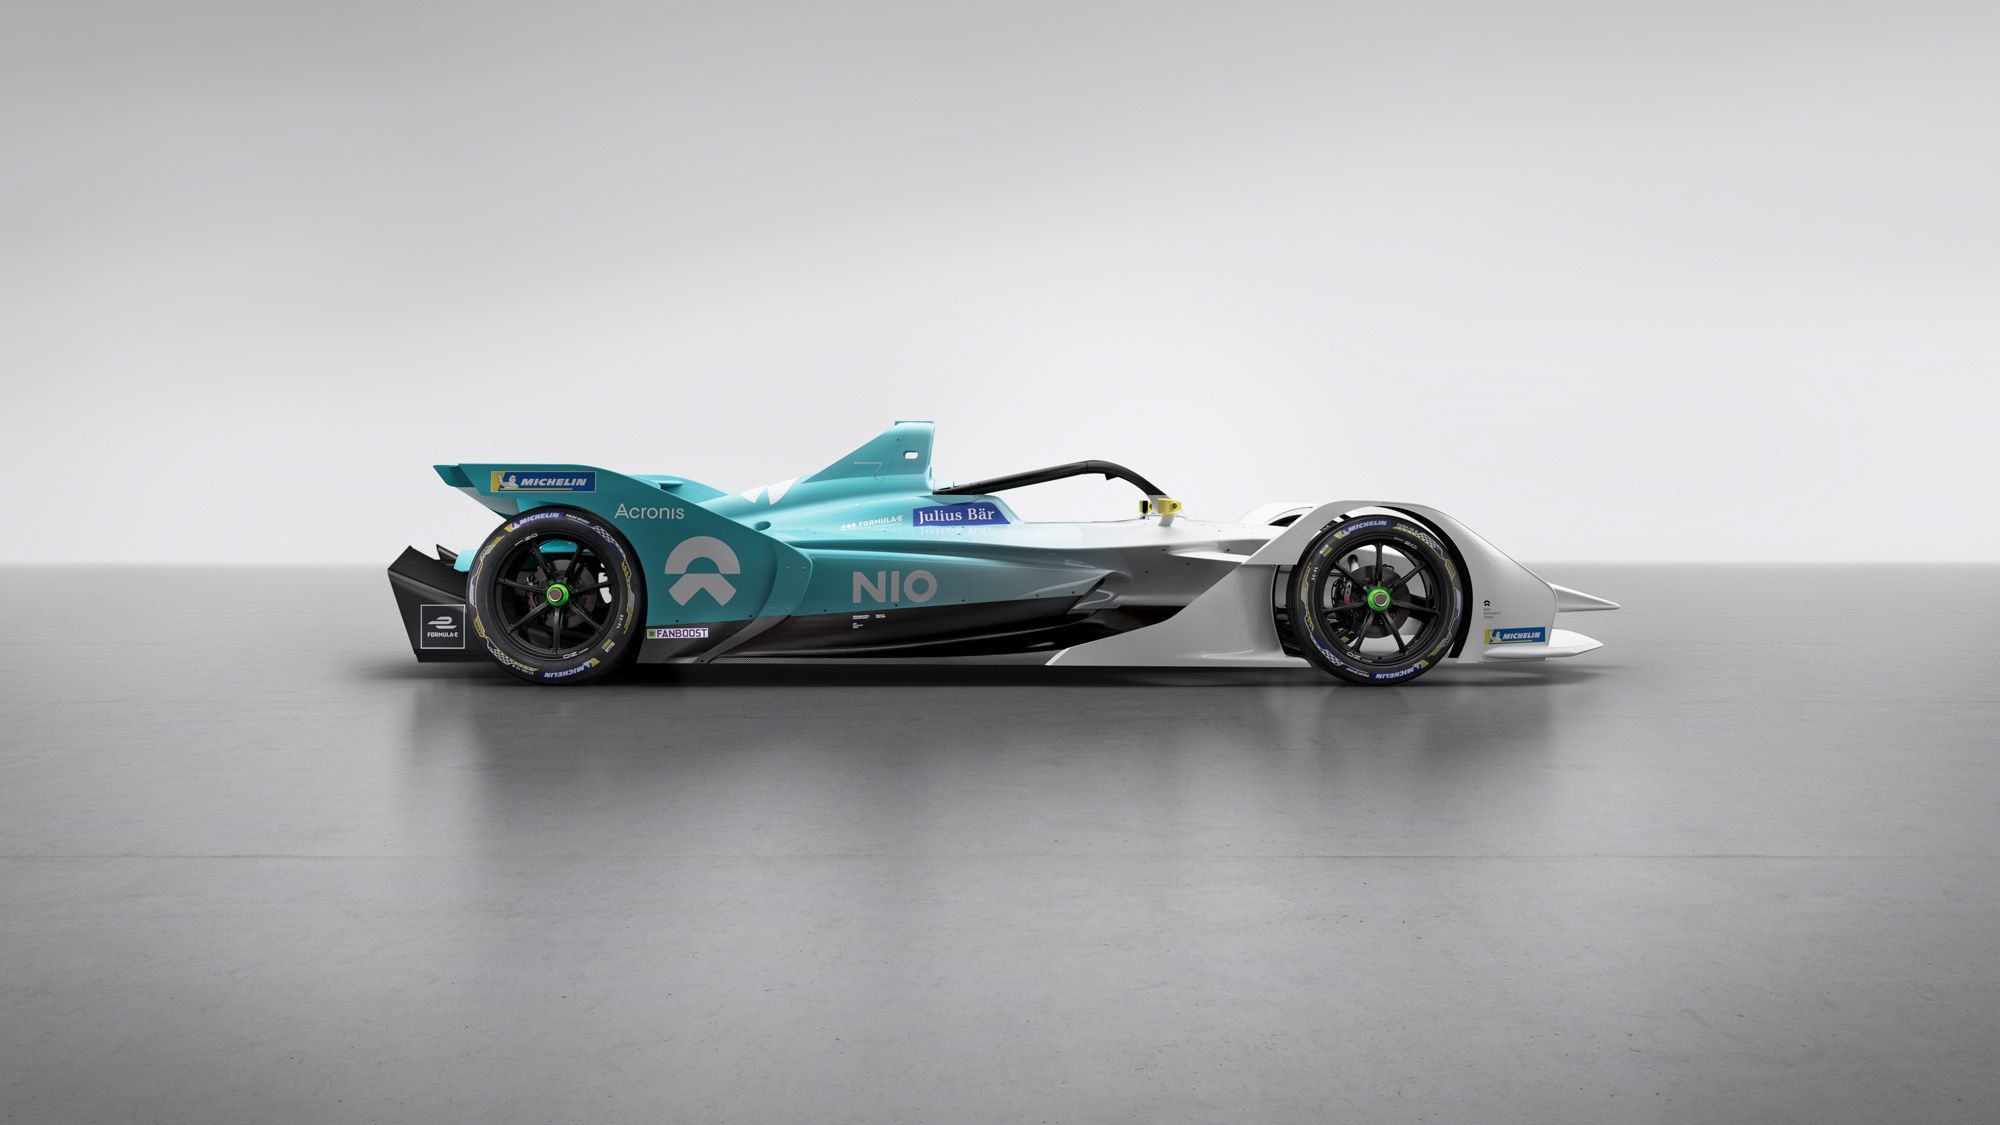 Pin by B4xi on Pages Formula e, Design lab, Automotive